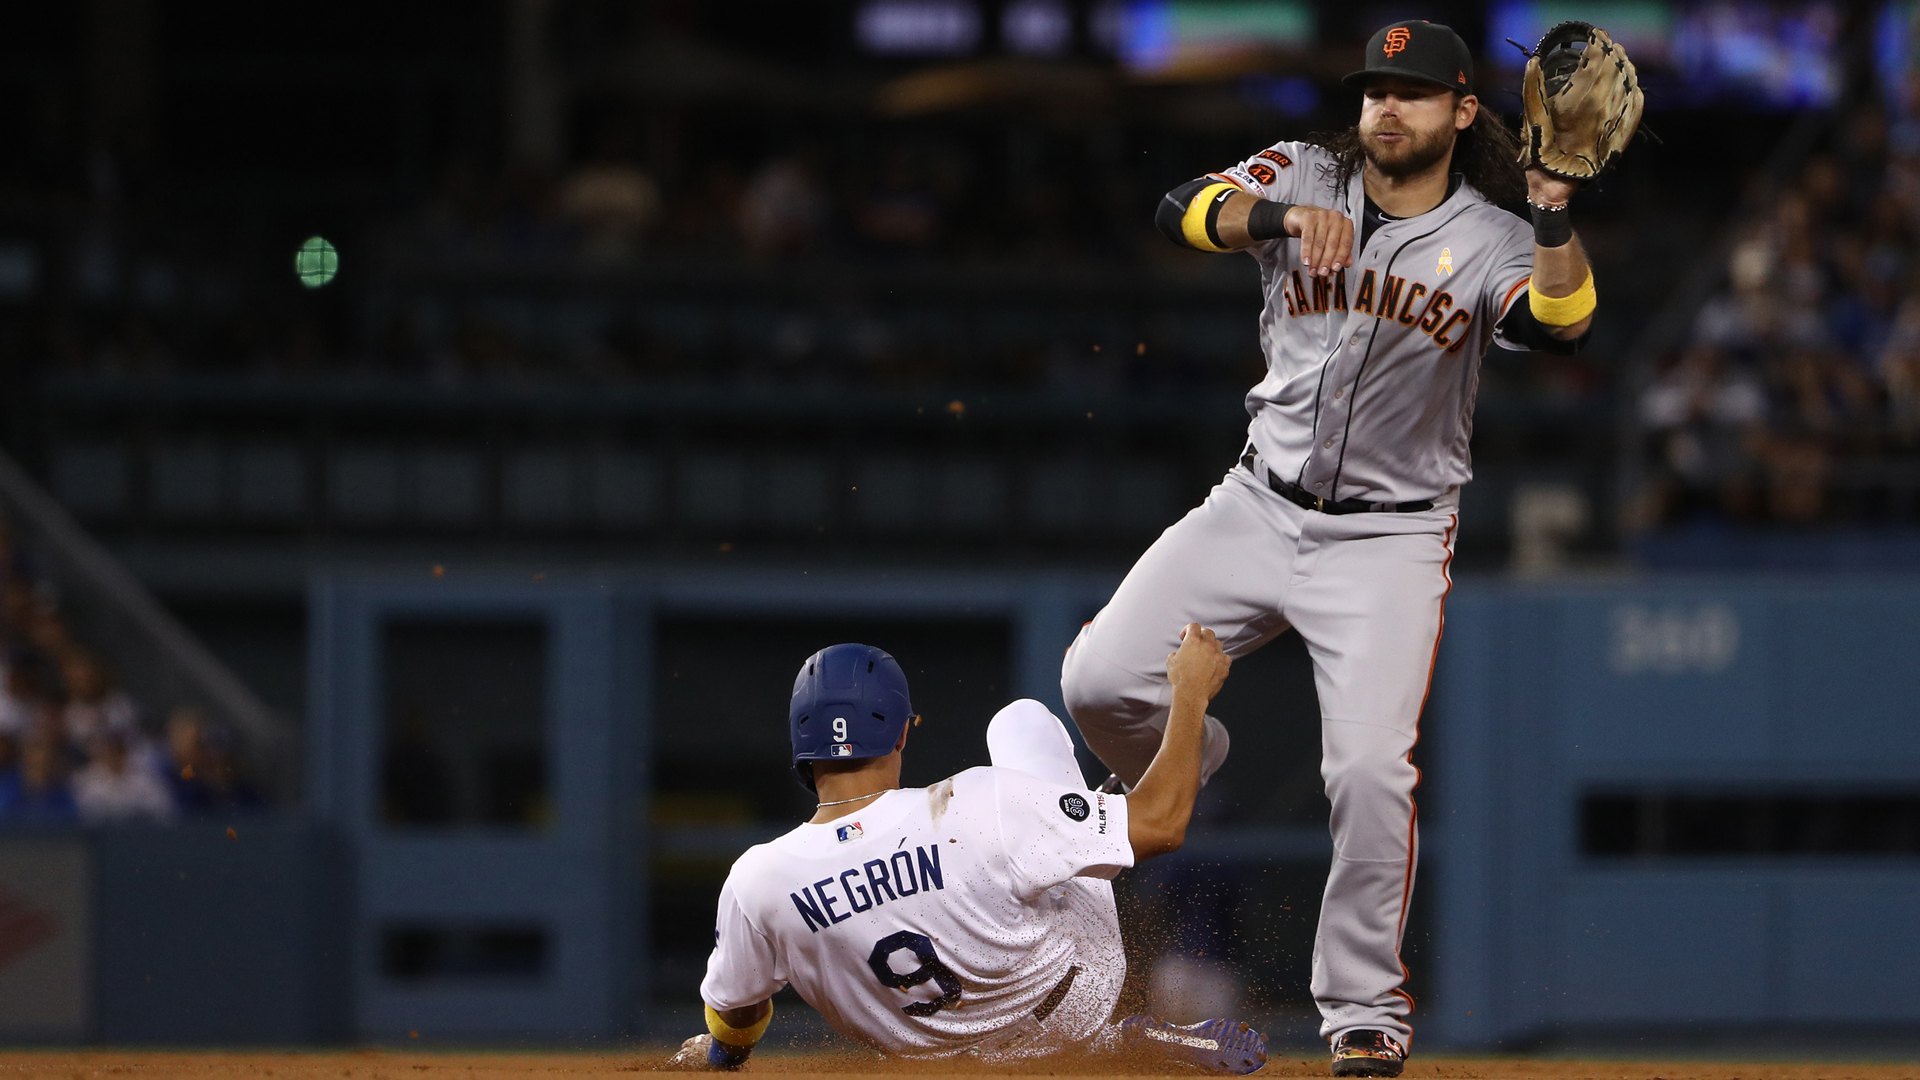 Brandon Crawford #35 of the San Francisco Giants follows through on his throw to first base to turn the double play as Kristopher Negron #9 of the Los Angeles Dodgers slides into second base during the eighth inning of the MLB game at Dodger Stadium on September 07, 2019 in Los Angeles, California. The double play ended the inning. (Credit: Victor Decolongon/Getty Images)